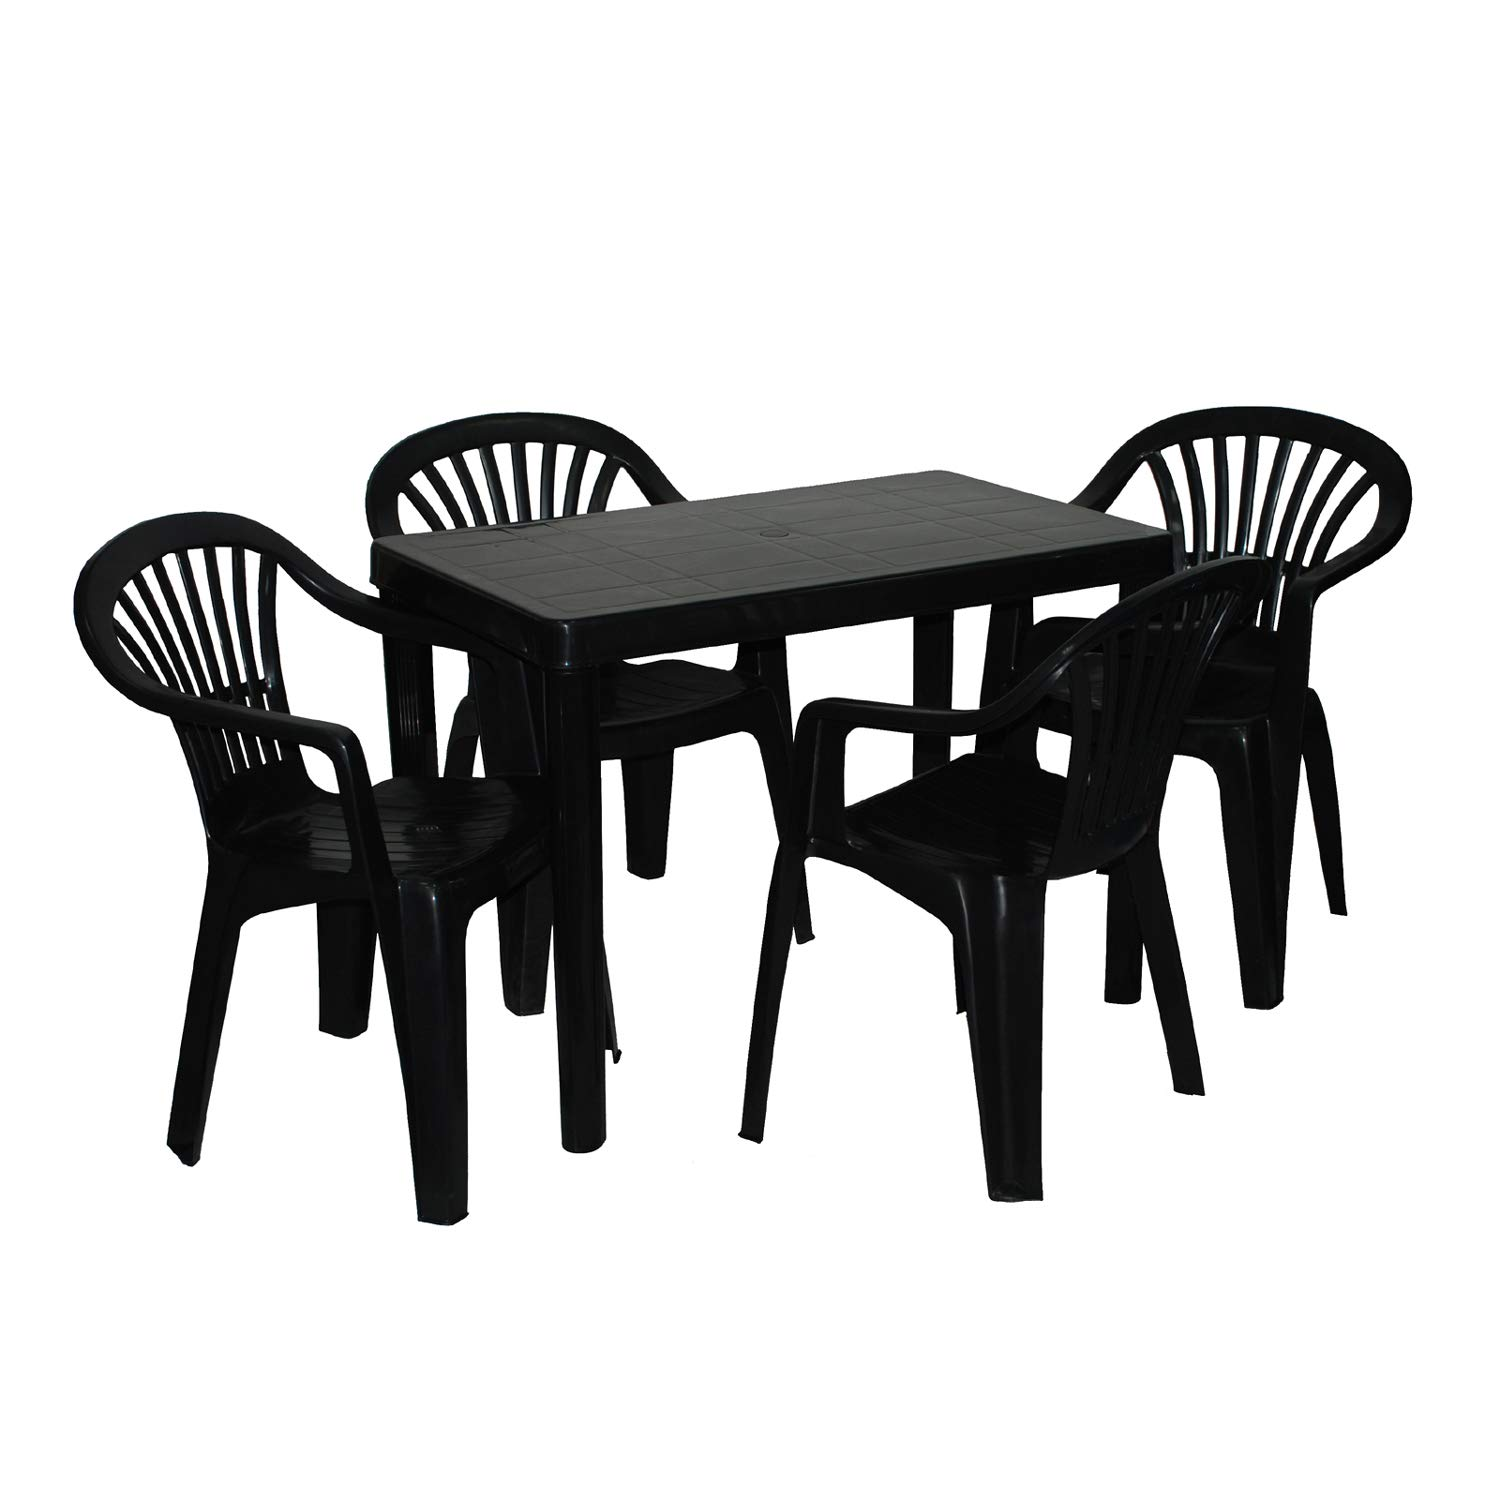 Plastic Garden Table & Chairs Set, 6 Seat - BLACK - Table 6cm (W) x 6cm  (L) x cm (H) & 6 Chairs - Quick & Simple Assembly.